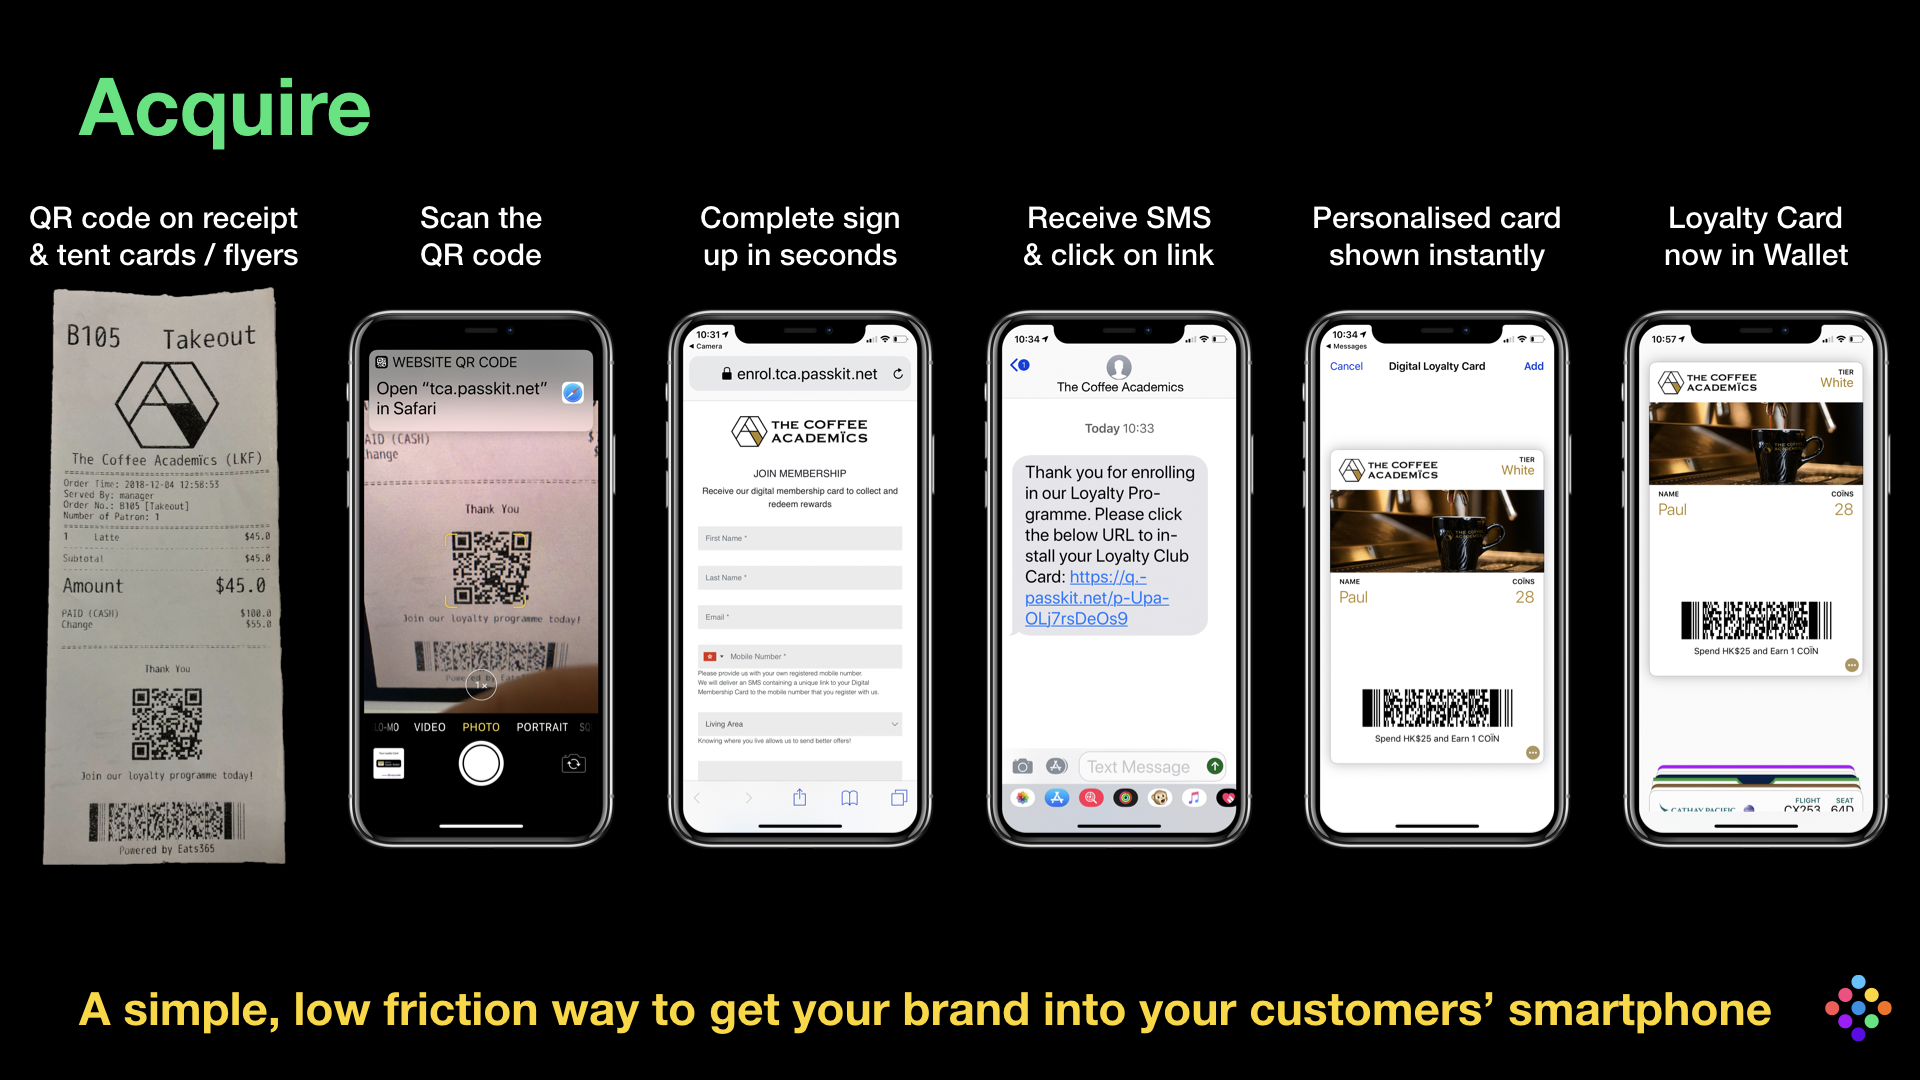 Acquire customers using Passes - images showing the user experience